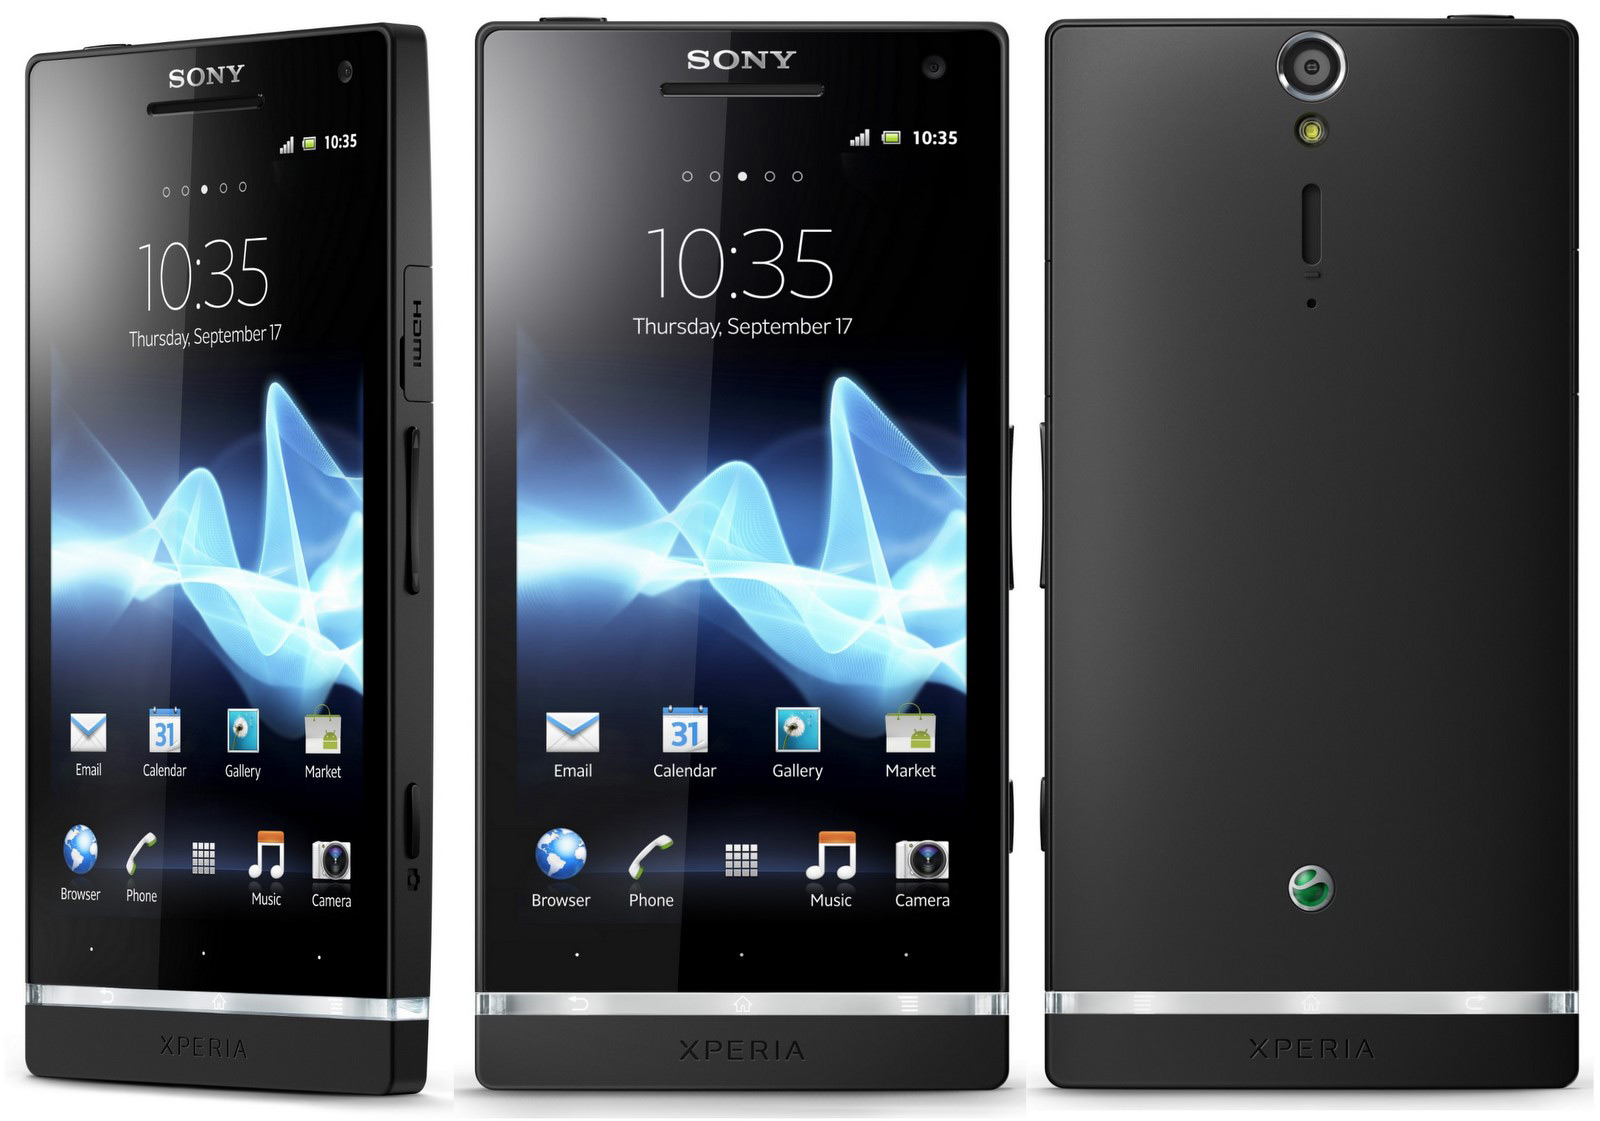 Sharp Reveals See Through Solar Panel further 2436 Sony Xperia S further 12450732 furthermore Can Samsung Smart Led Tv Play M4v Video Format Files in addition HT201471. on sharp tv audio output